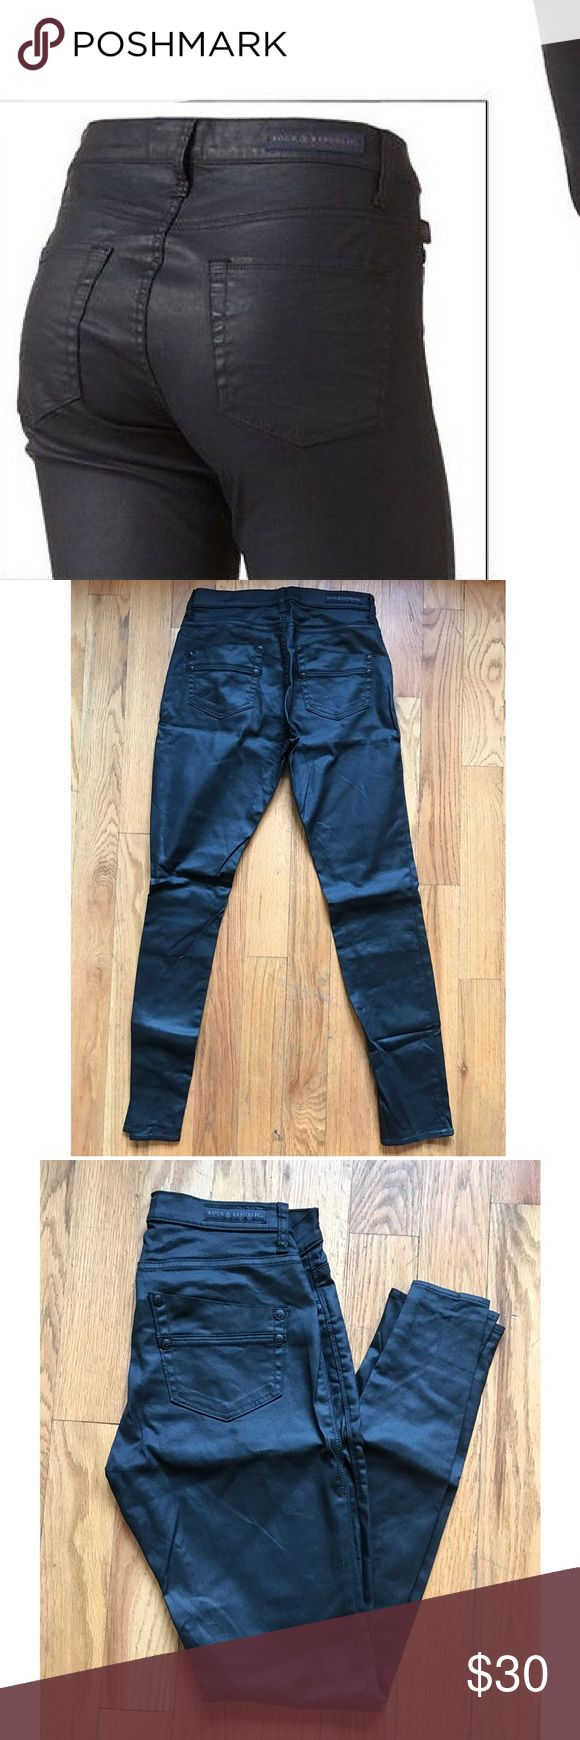 """Rock & Republic faux leather skinny jeans 👖 Rock these skinny jeans from Rock & Republic! Features 5 pockets and coated in sleek black faux leather. Measures 14"""" waist and 31"""" inseam. True to size.  Used. Good condition✔️ Rock & Republic Jeans"""